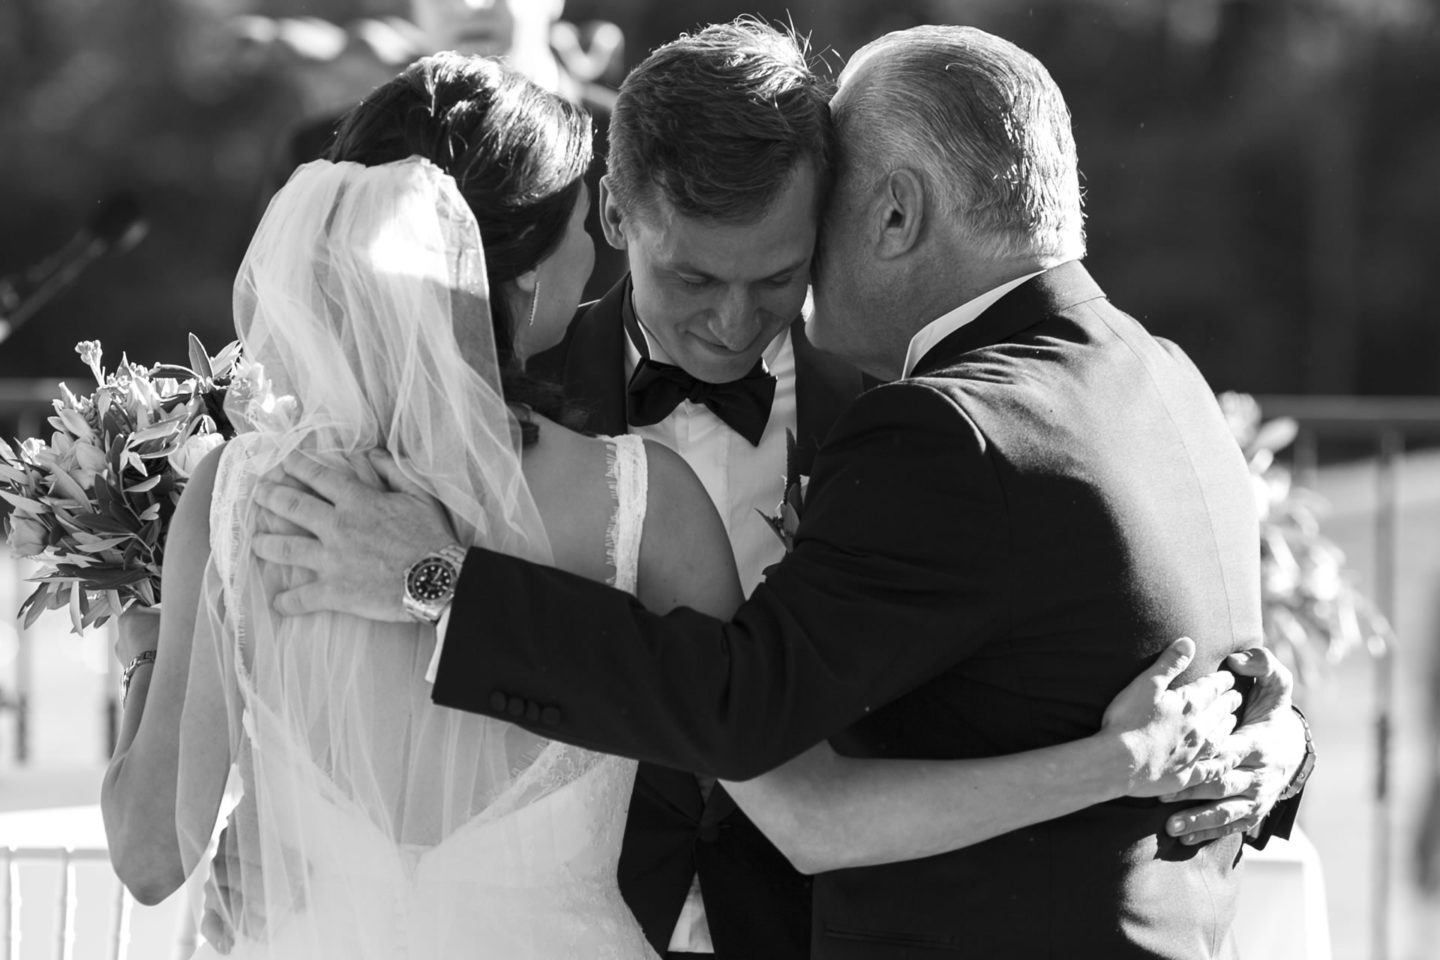 Hug :: Ceremony :: David Bastianoni wedding photographer